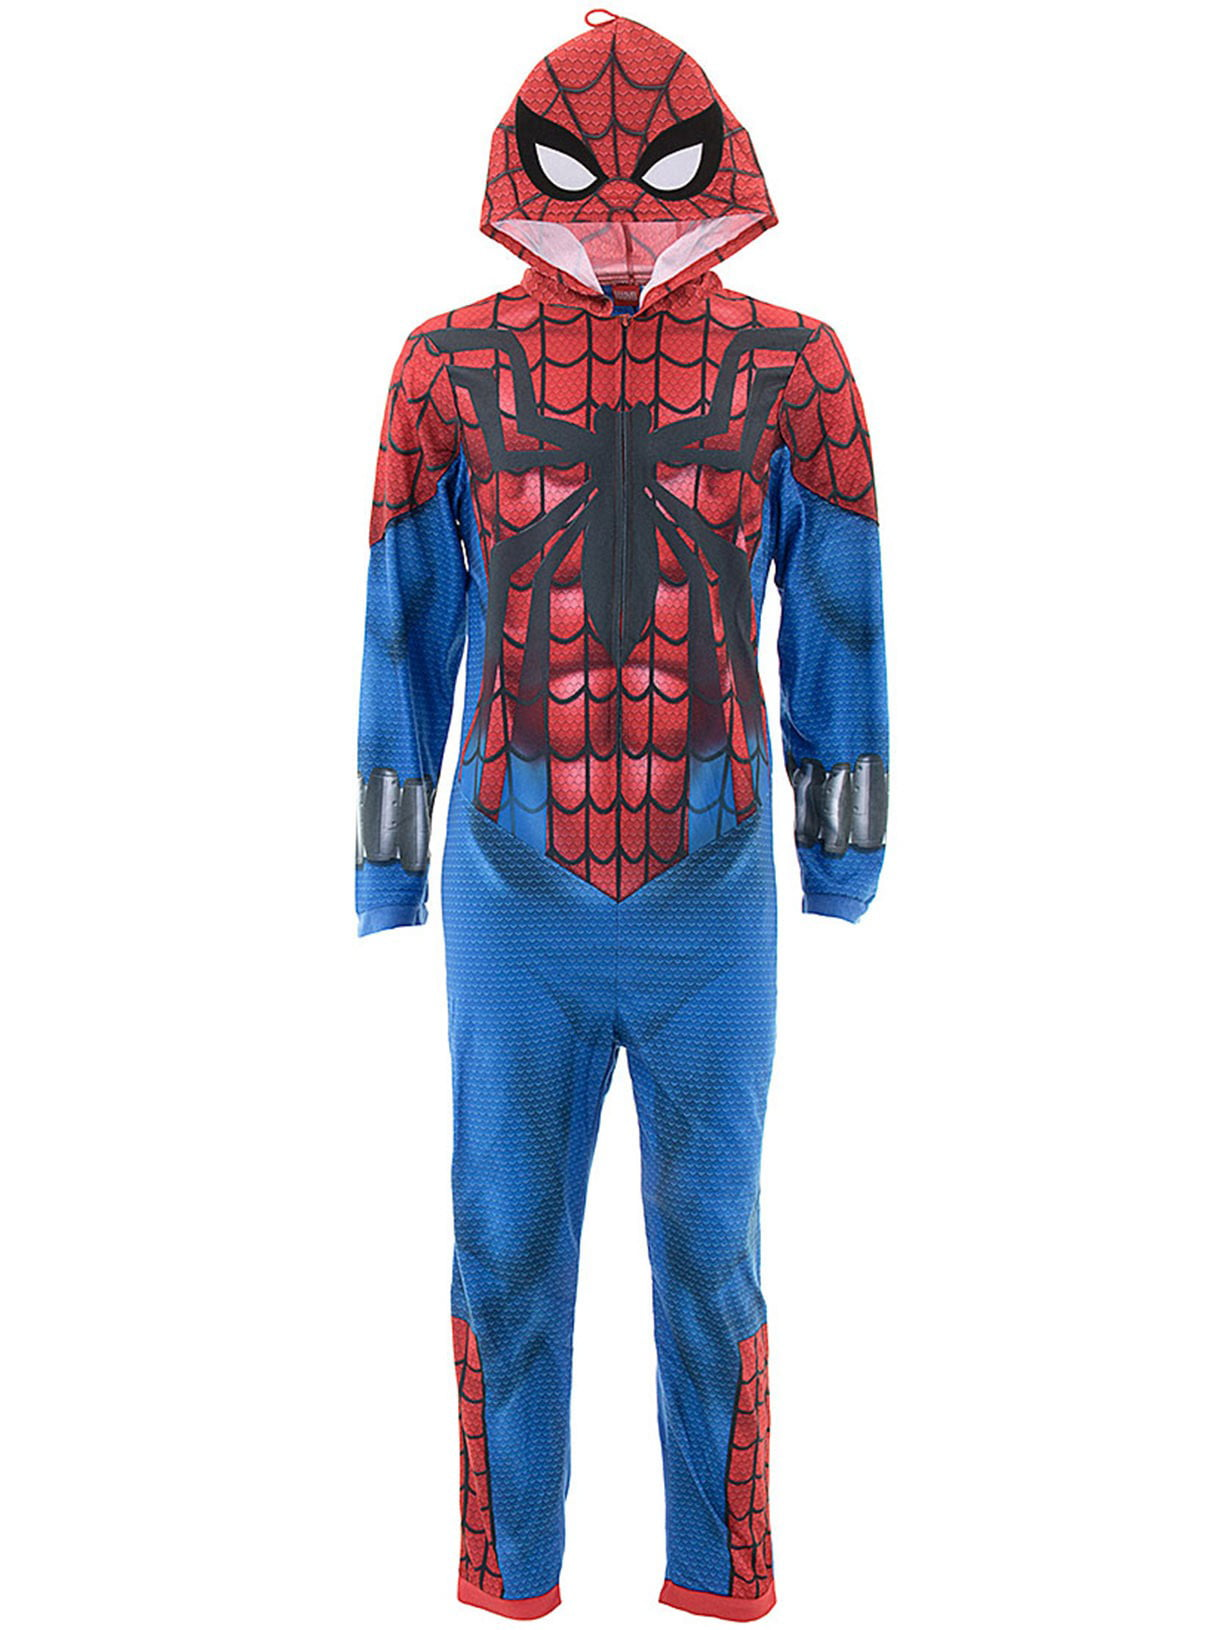 7f23f0f6702a Briefly Stated - Marvel Adult Spider-man Hooded Union Suit Pajamas ...